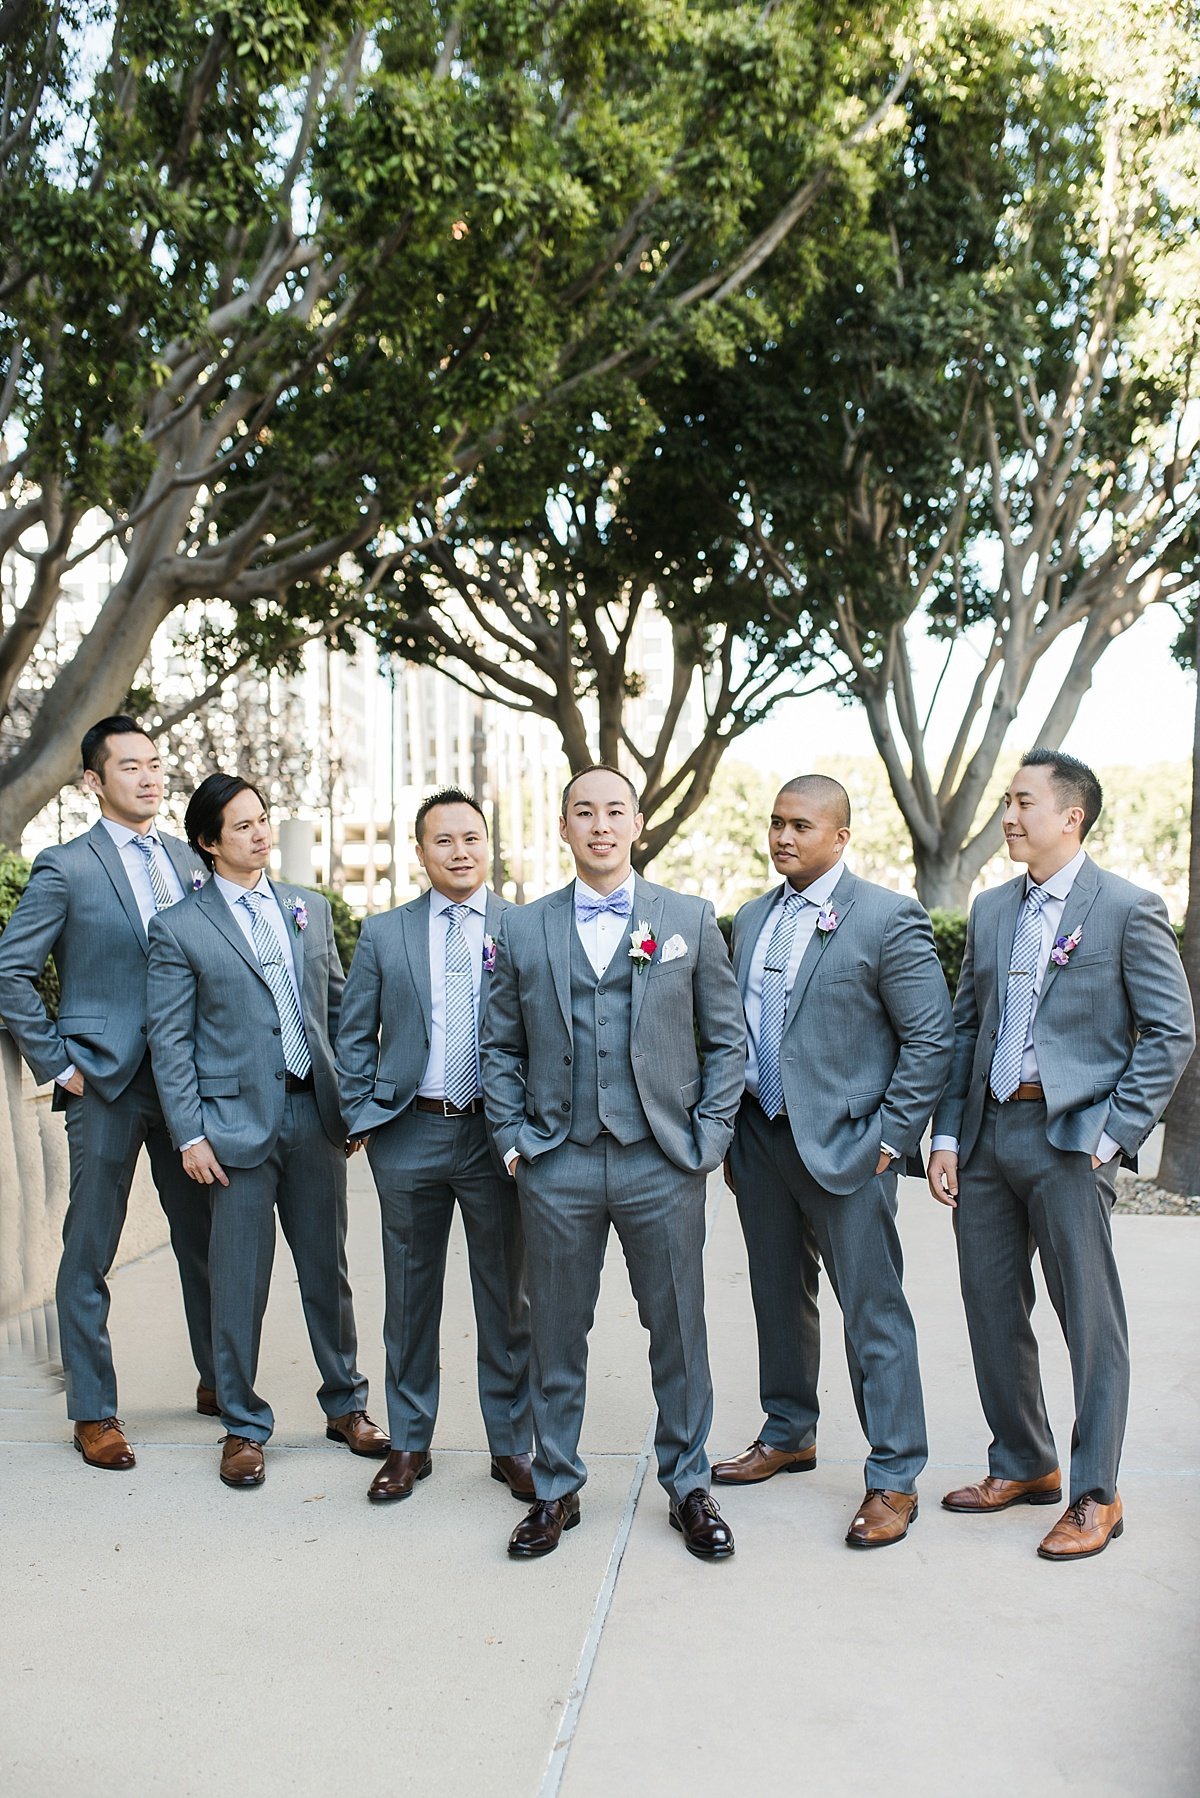 Irvine-Hotel-Wedding-Photographer-Amber-Tony-Carissa-Woo-Photography_0024.jpg